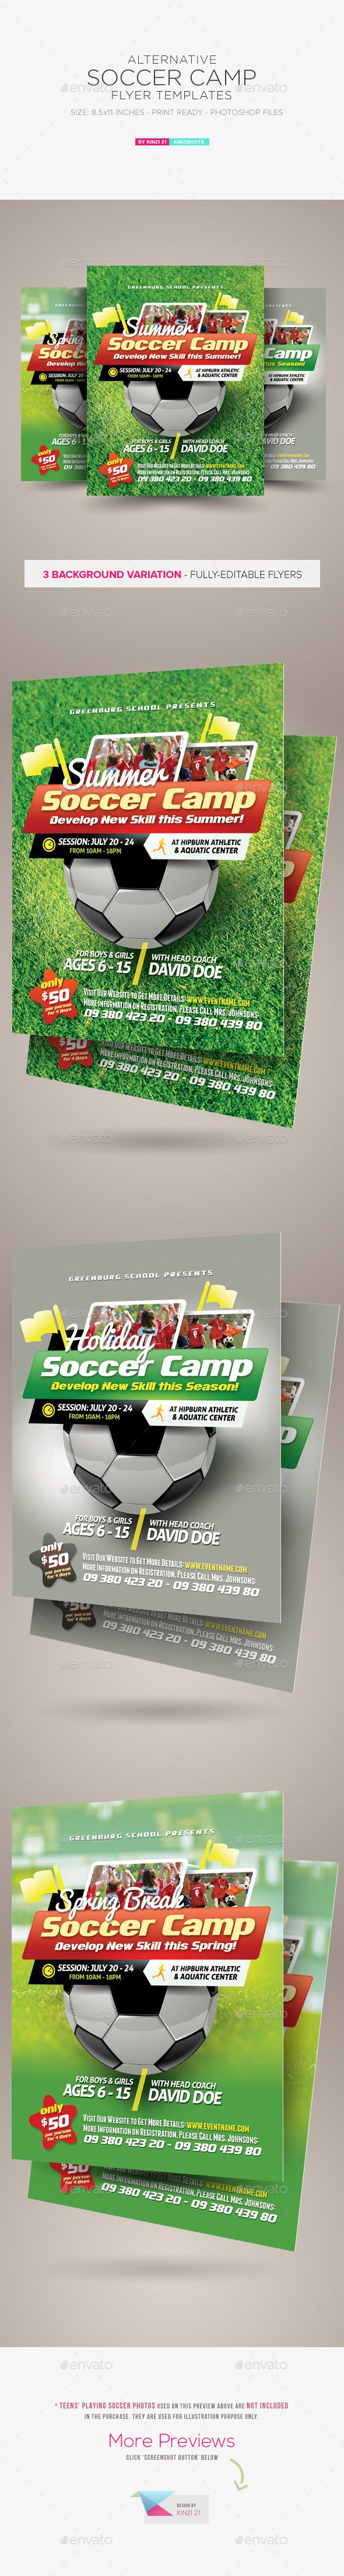 Soccer Camp Flyer Templates — Photoshop PSD #students #ad • Available here → https://graphicriver.net/item/soccer-camp-flyer-templates/11555823?ref=pxcr